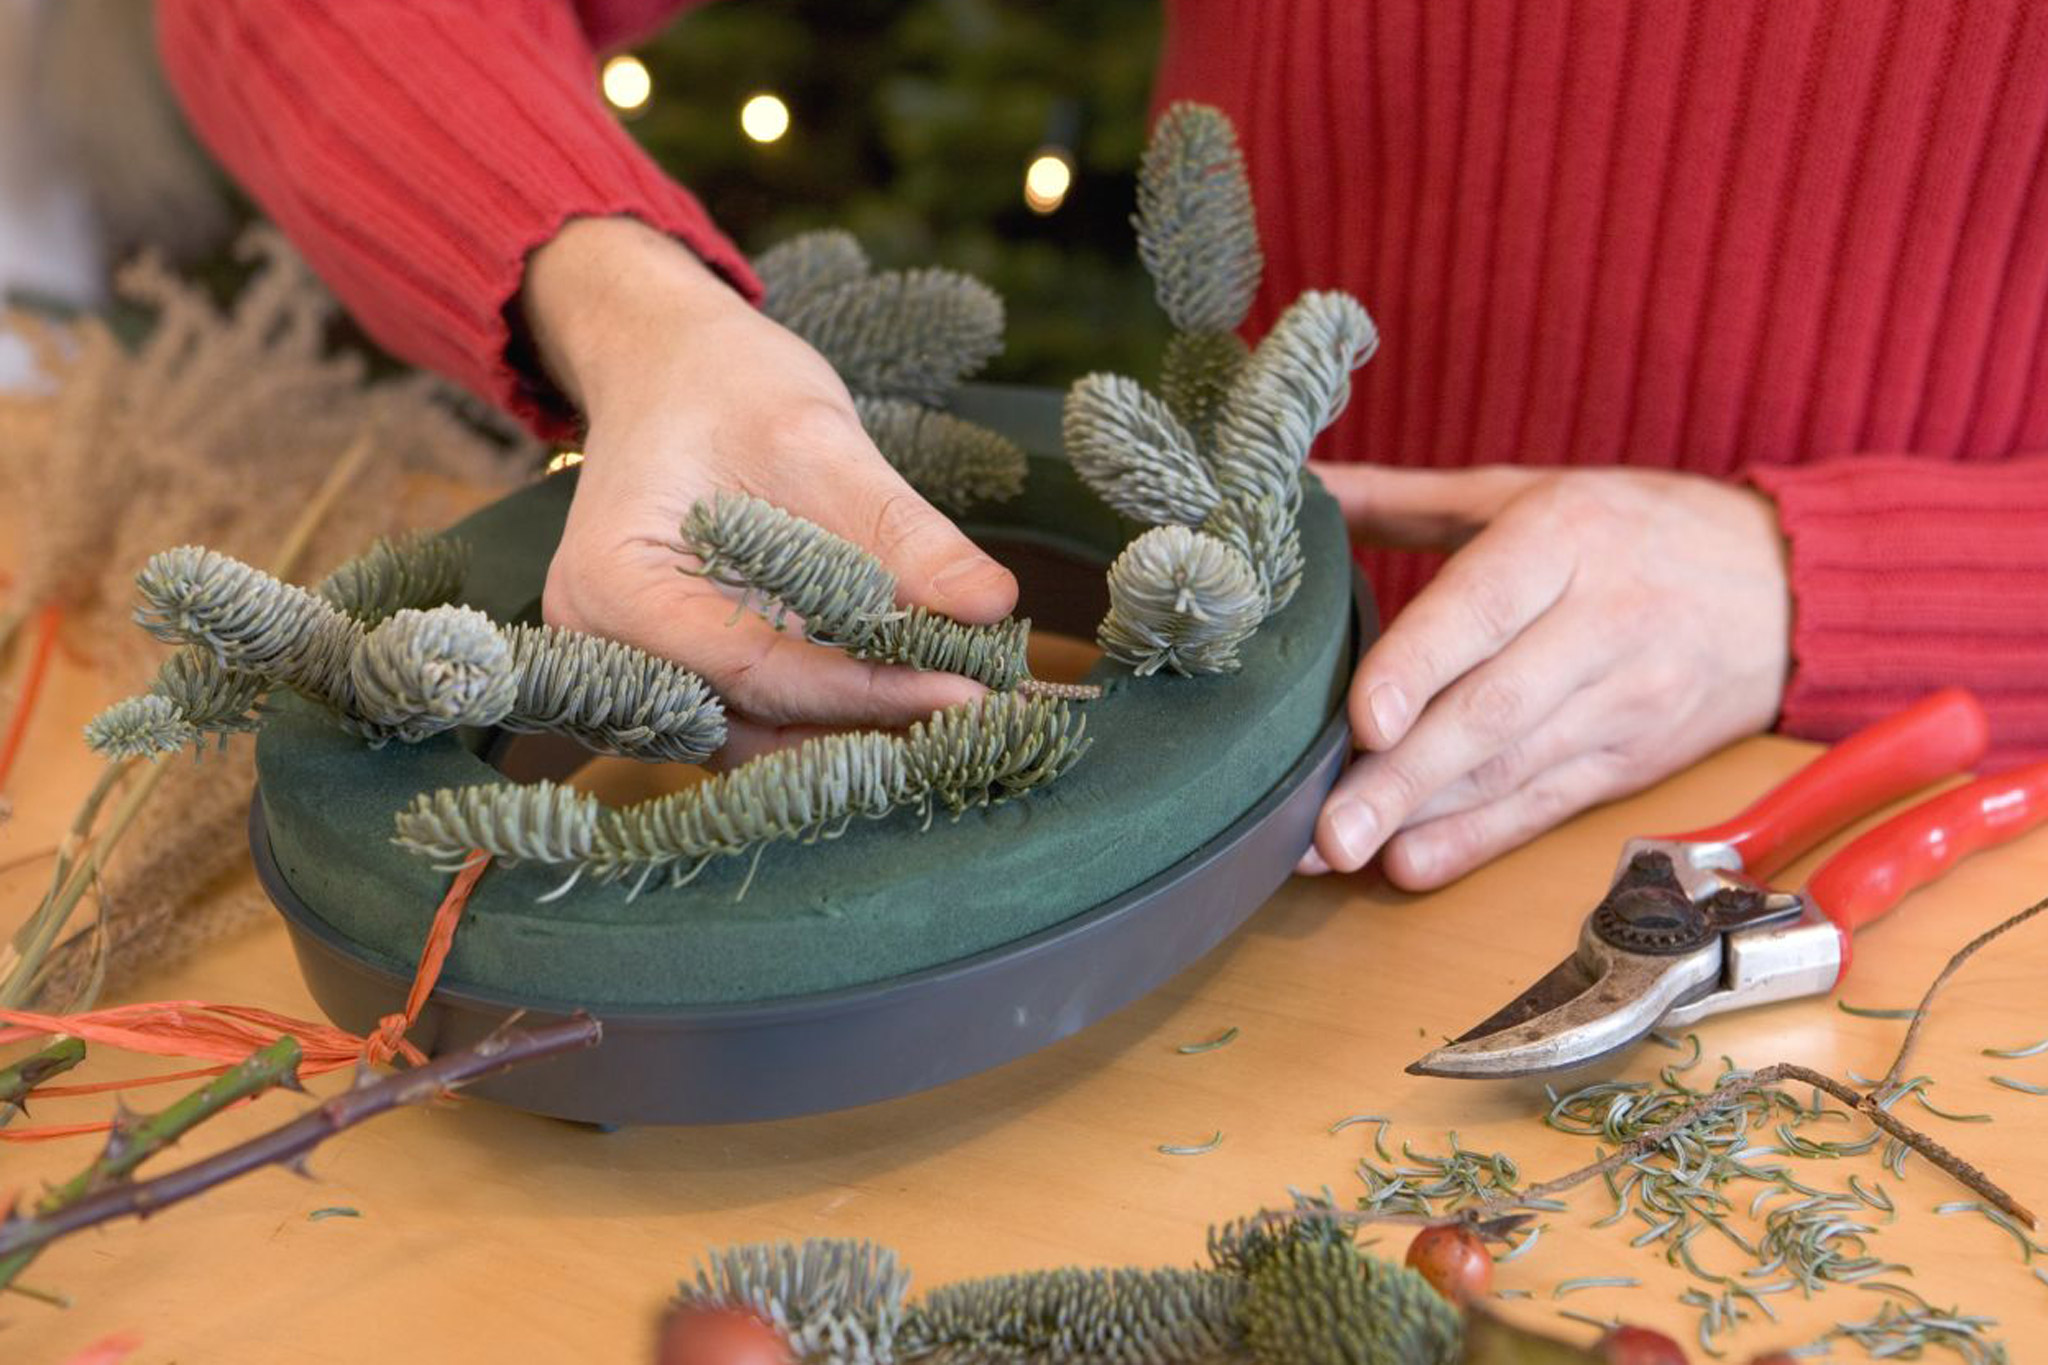 push-the-christmas-tree-sprigs-into-the-foam-2